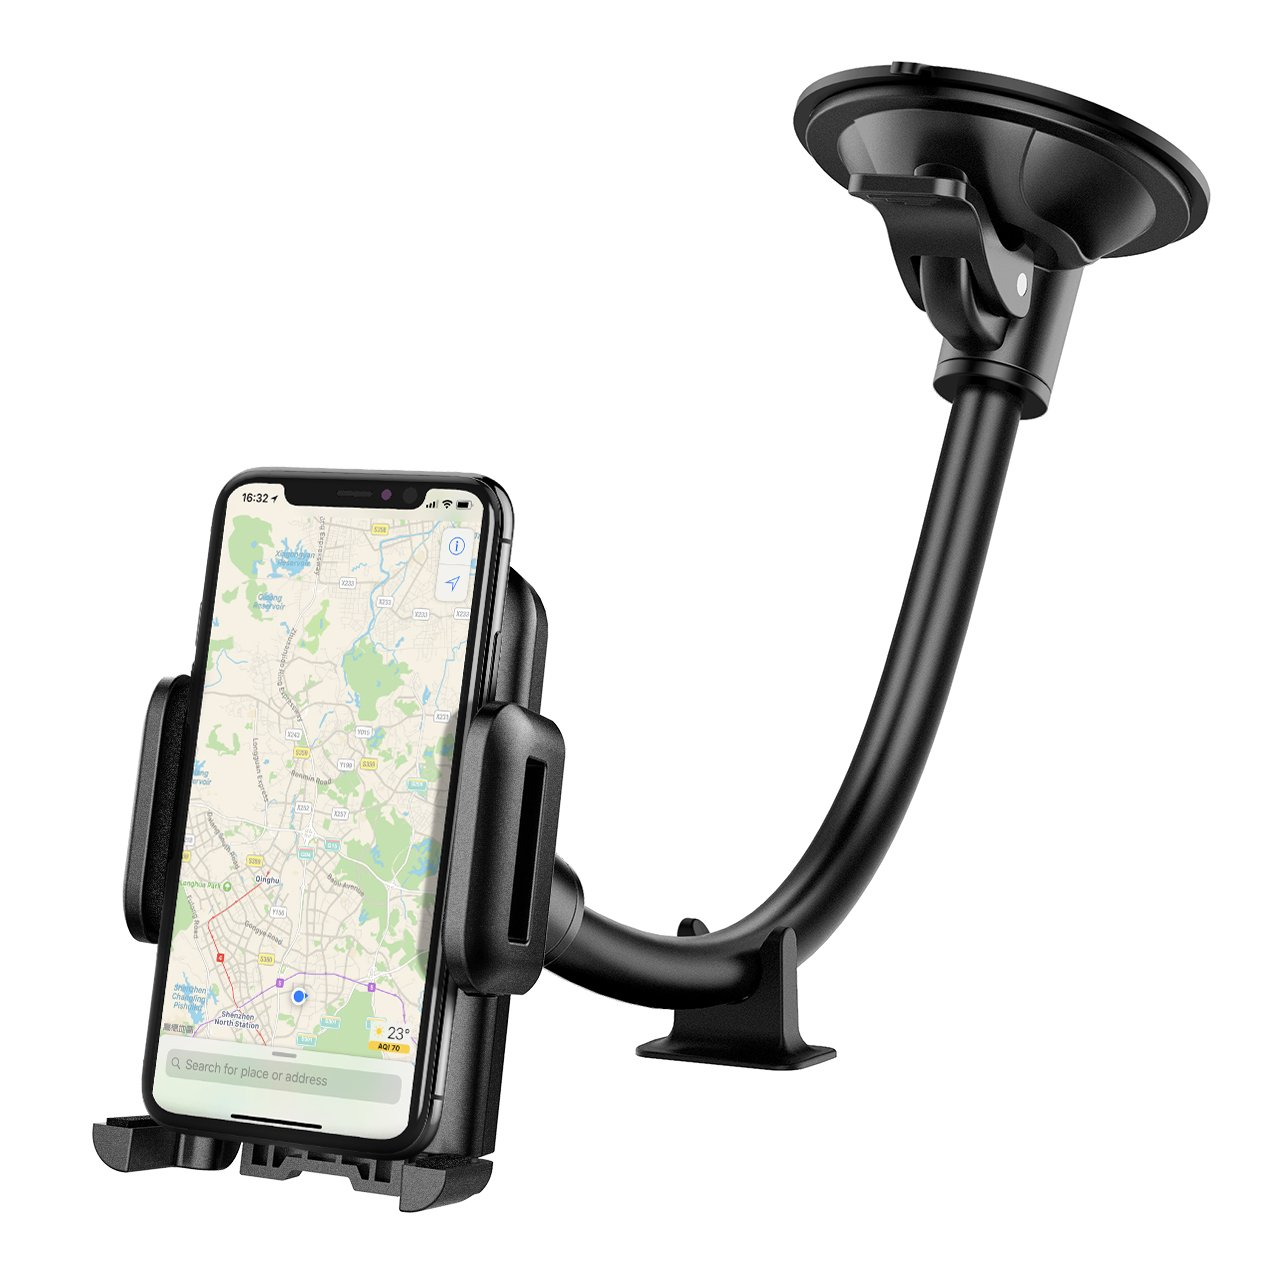 Car Phone Mount, Mpow Windscreen Car Phone Holder Grip Flex Universal Windshield Cars Cradle with Extra Dashboard Base and Dual Strong Suction Car Holder for iPhone X/10 8 7/7 Plus 6s/6/Plus 5s Samsung S9 S8 Note HTC LG and Others product image